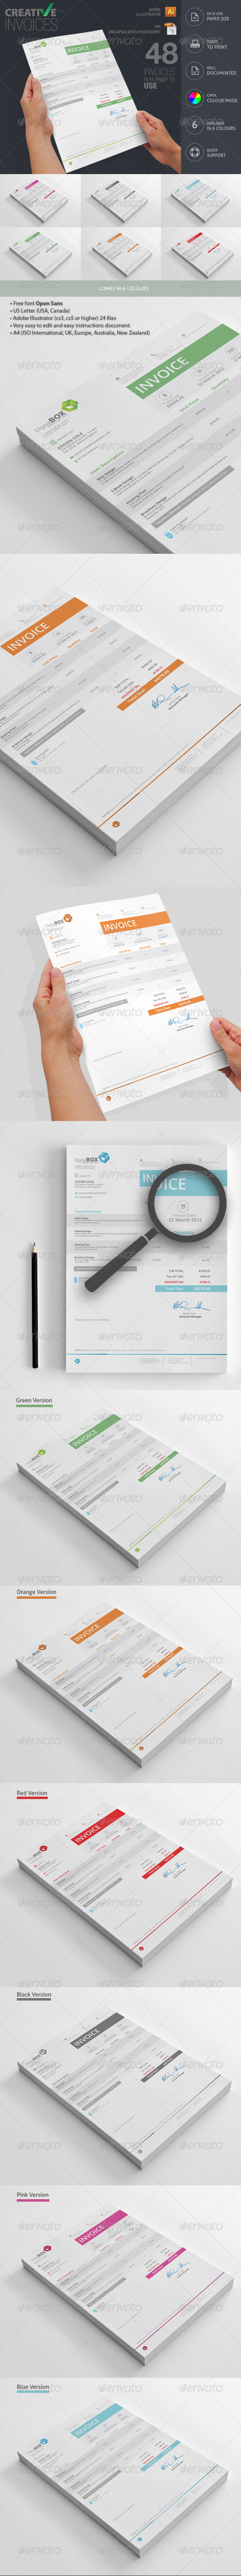 GraphicRiver Invoices 7667850